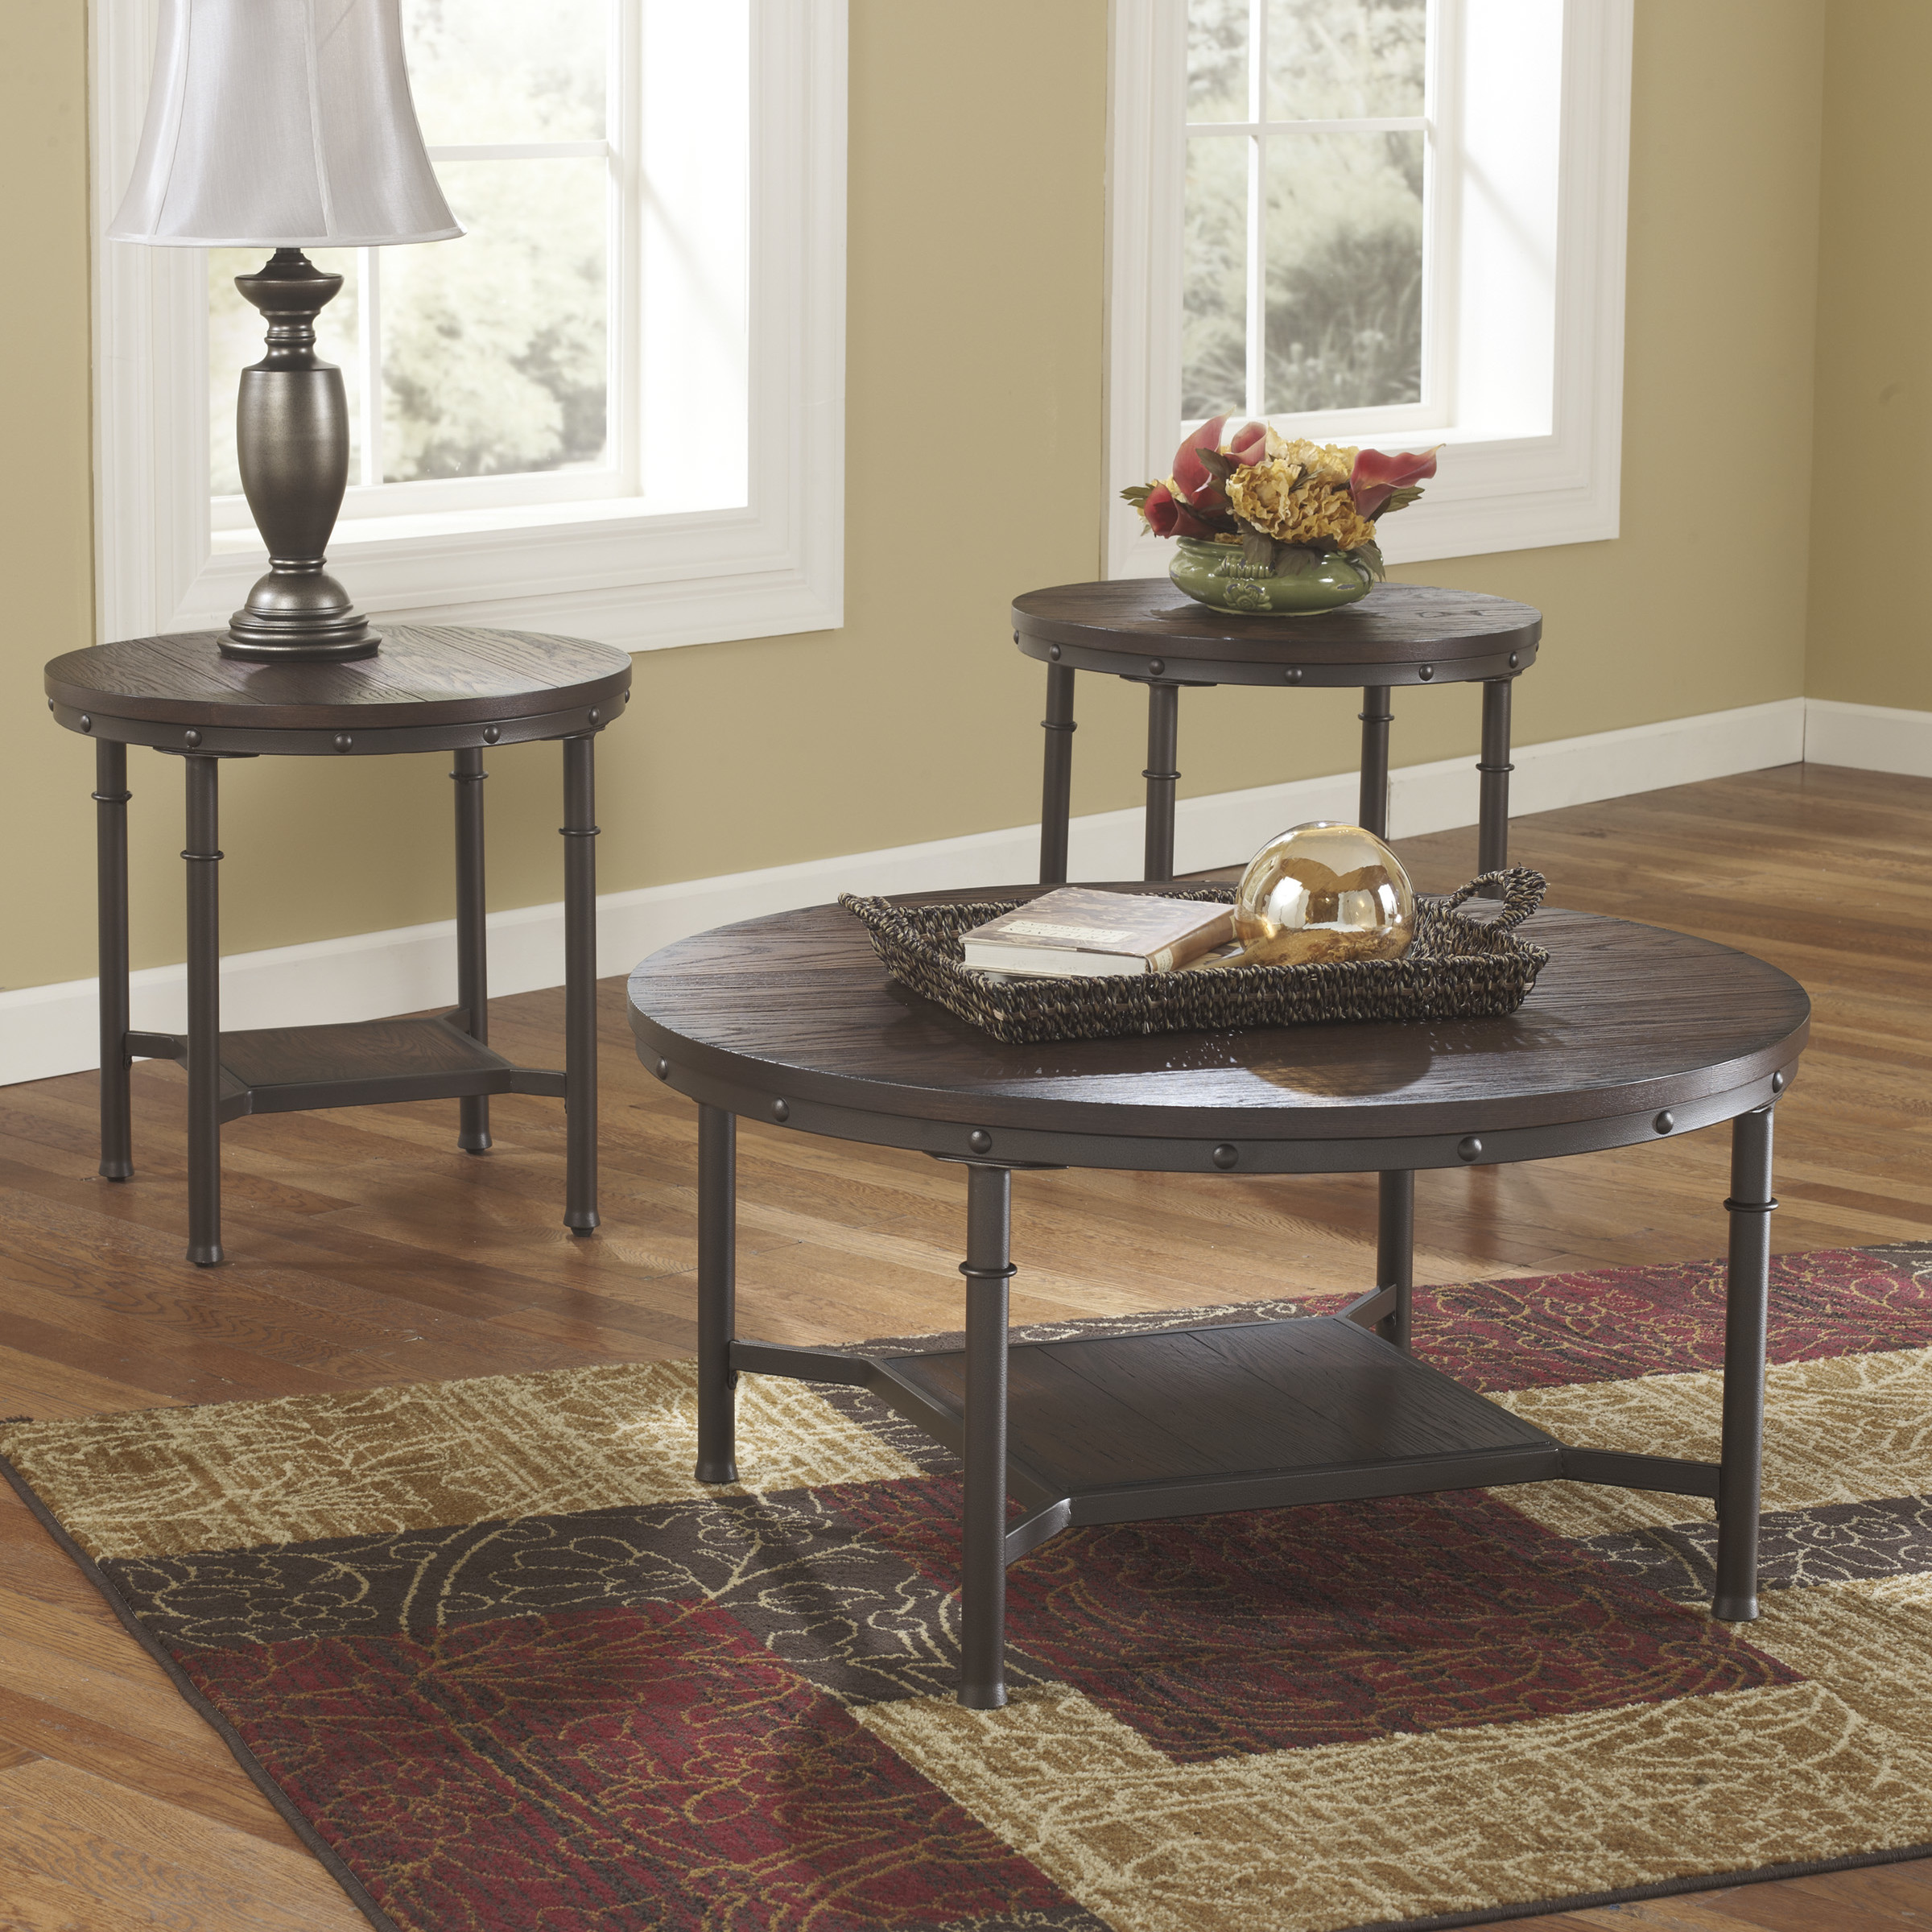 Susan 3 Piece Coffee Table Set Round Coffee Table Sets Round Glass Coffee Tables Furniture Side Tables For Living Room (Image 9 of 10)